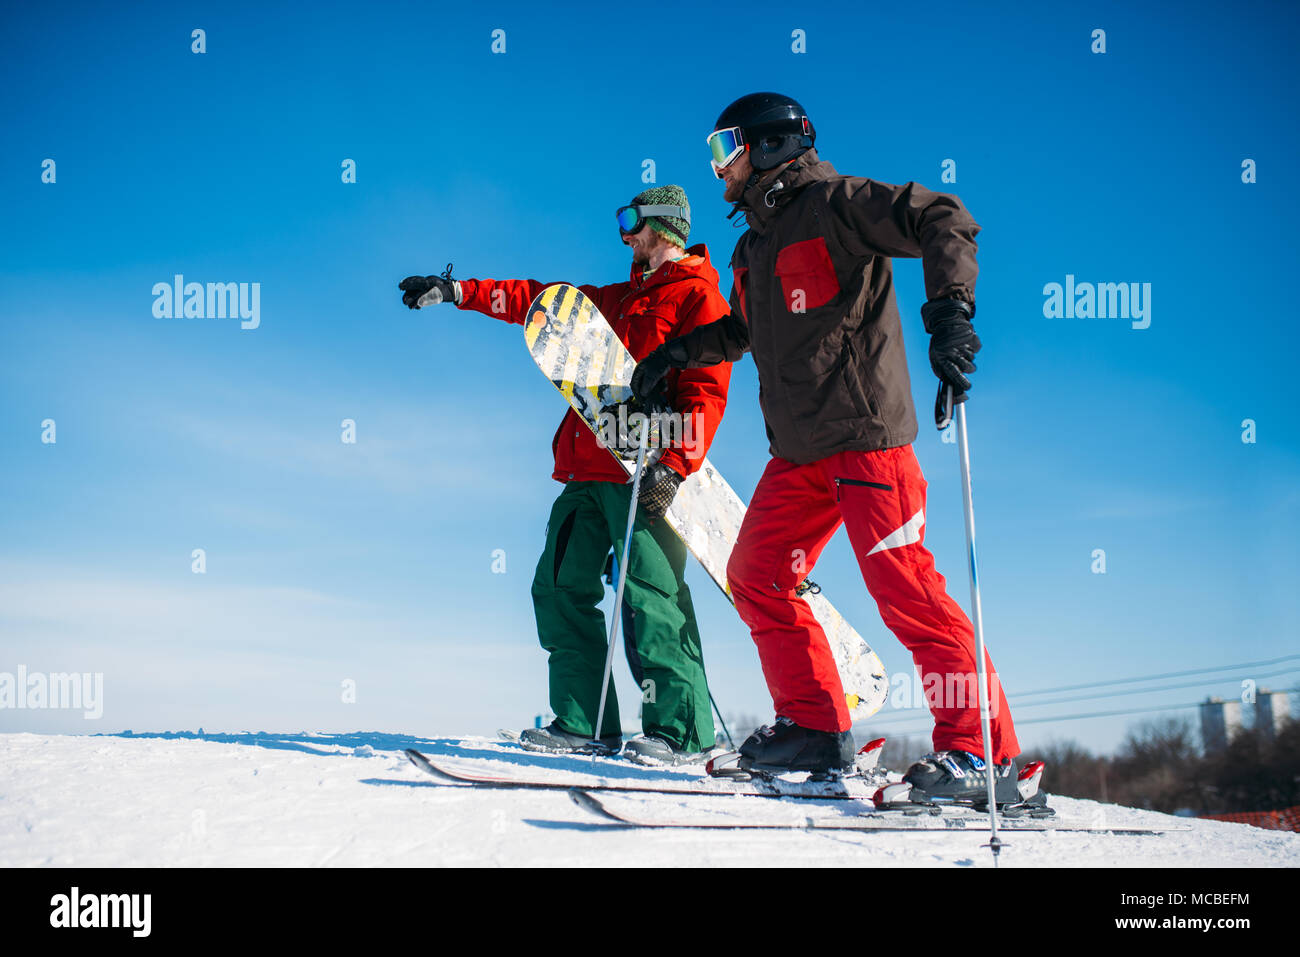 Downhill skiing, skiers on the top of slope - Stock Image